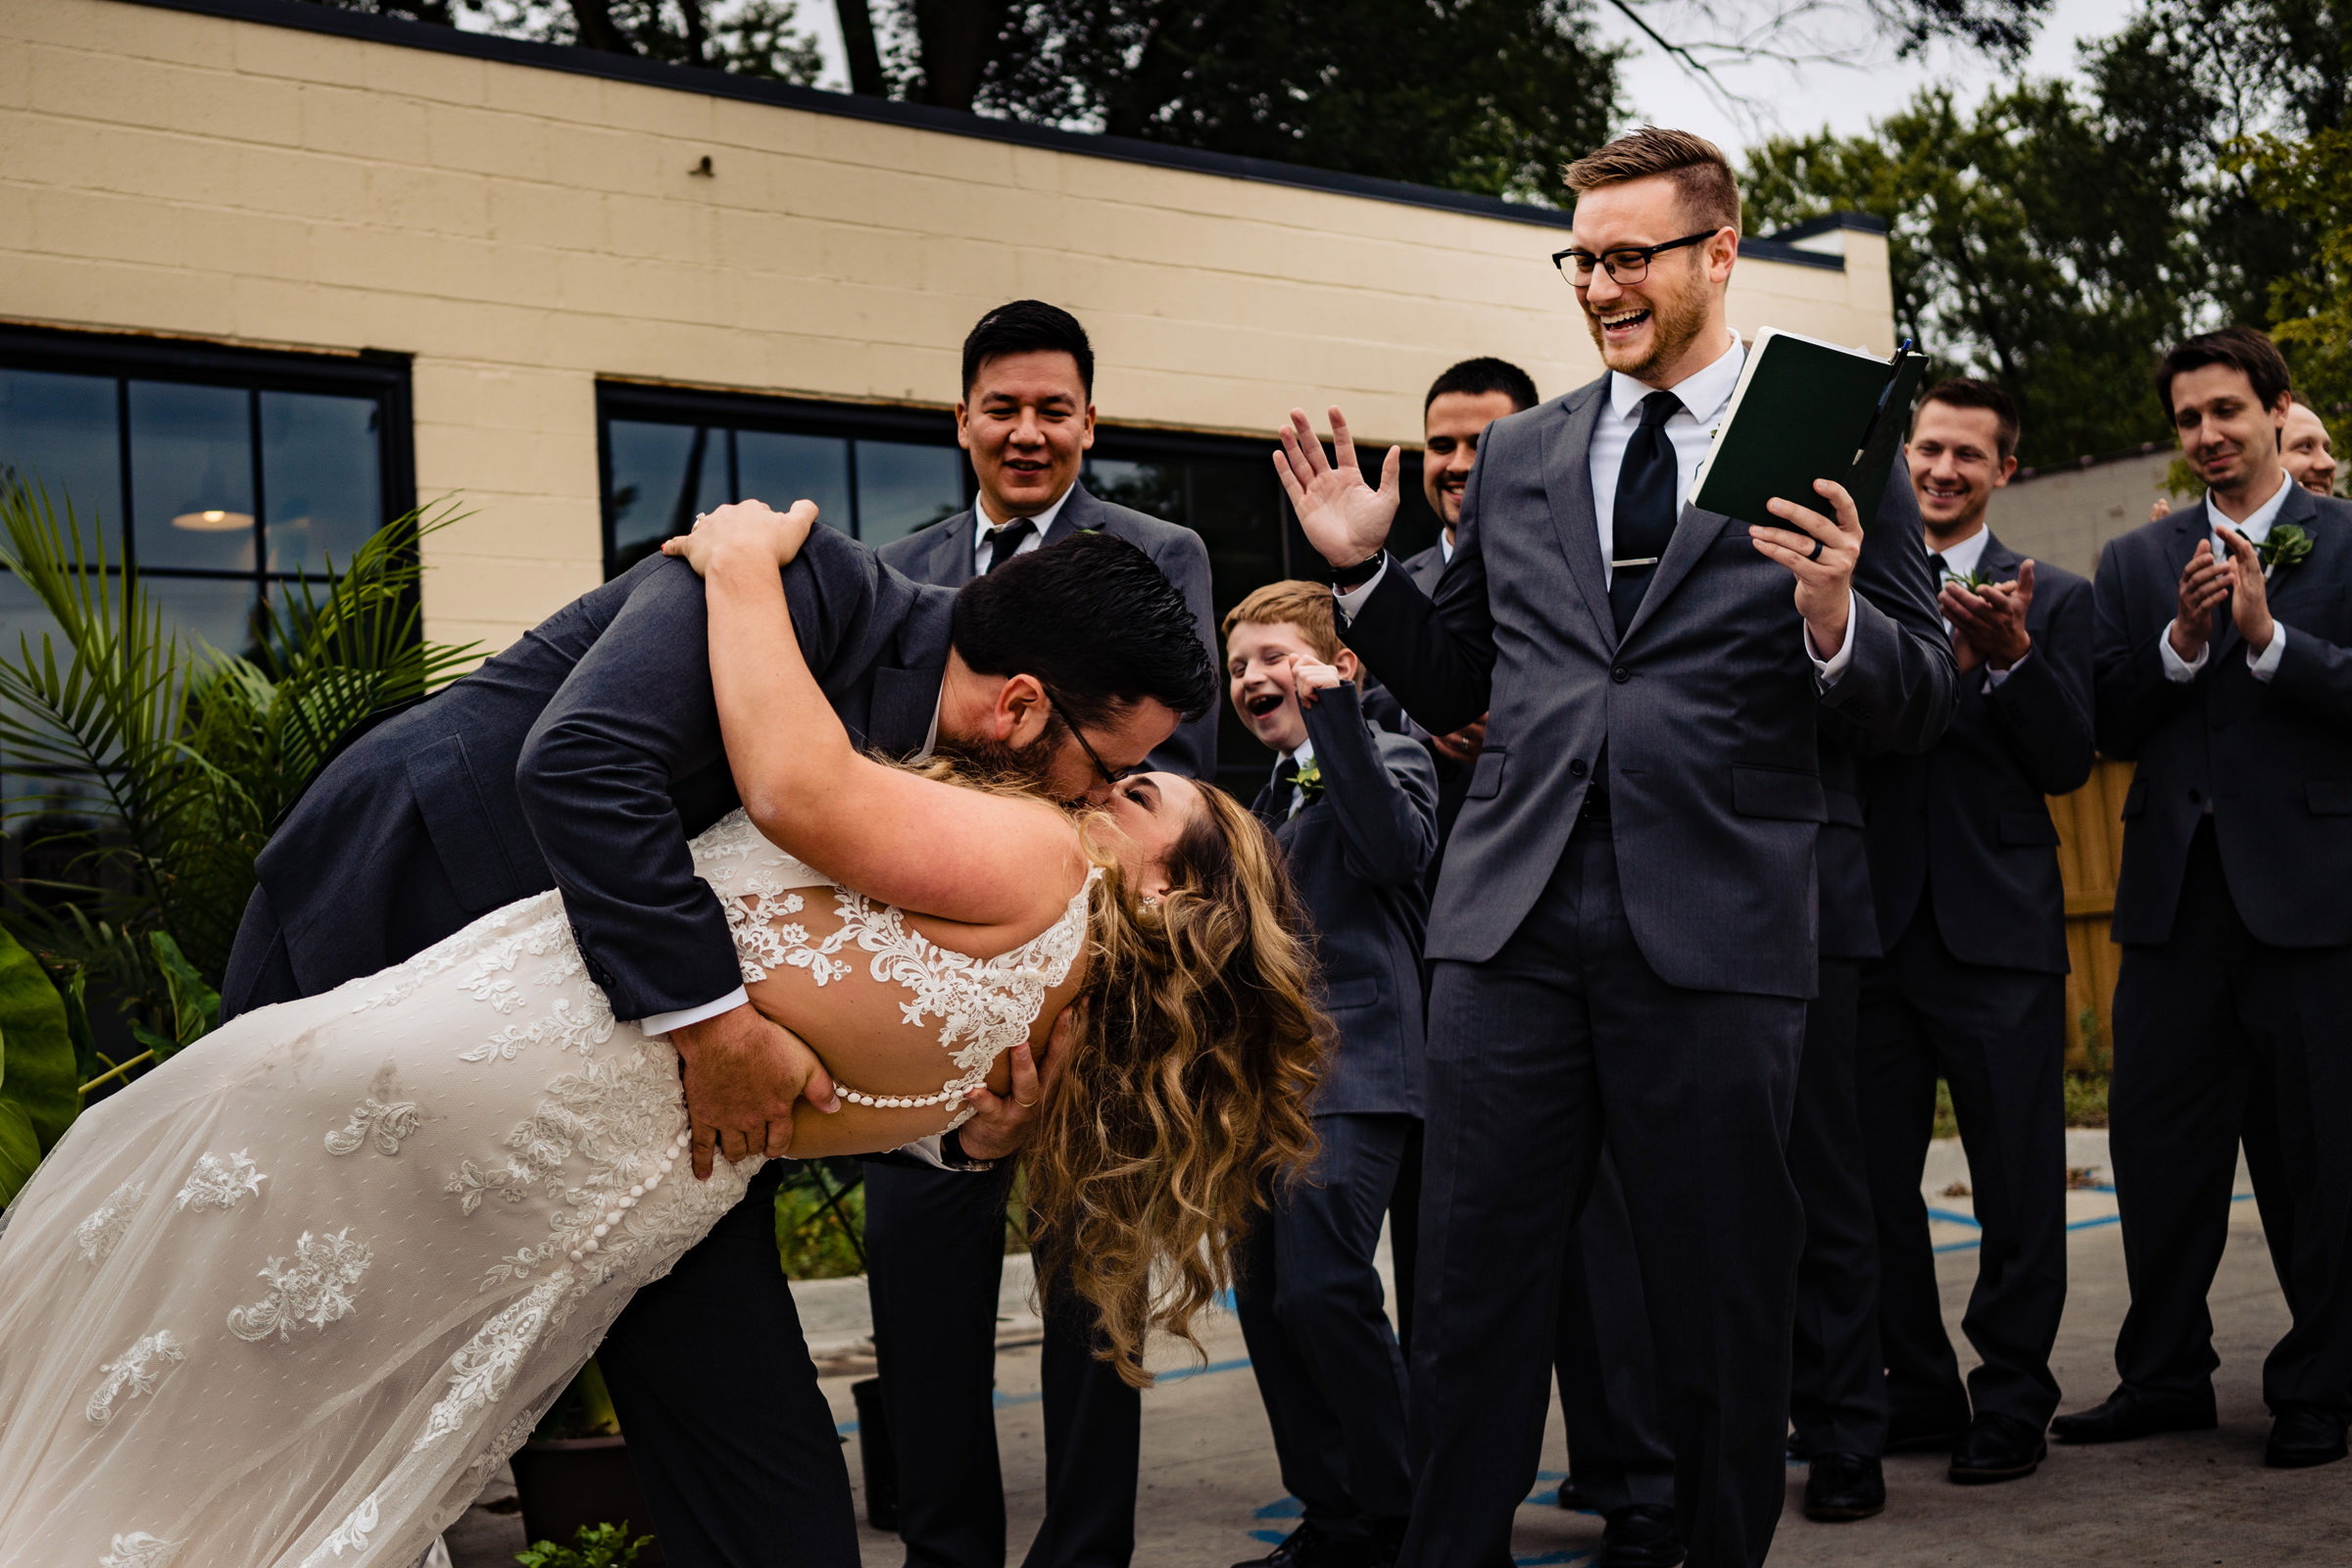 Groom dipping bride and almost dropping her - Vinson Image, Arkansas wedding photographer